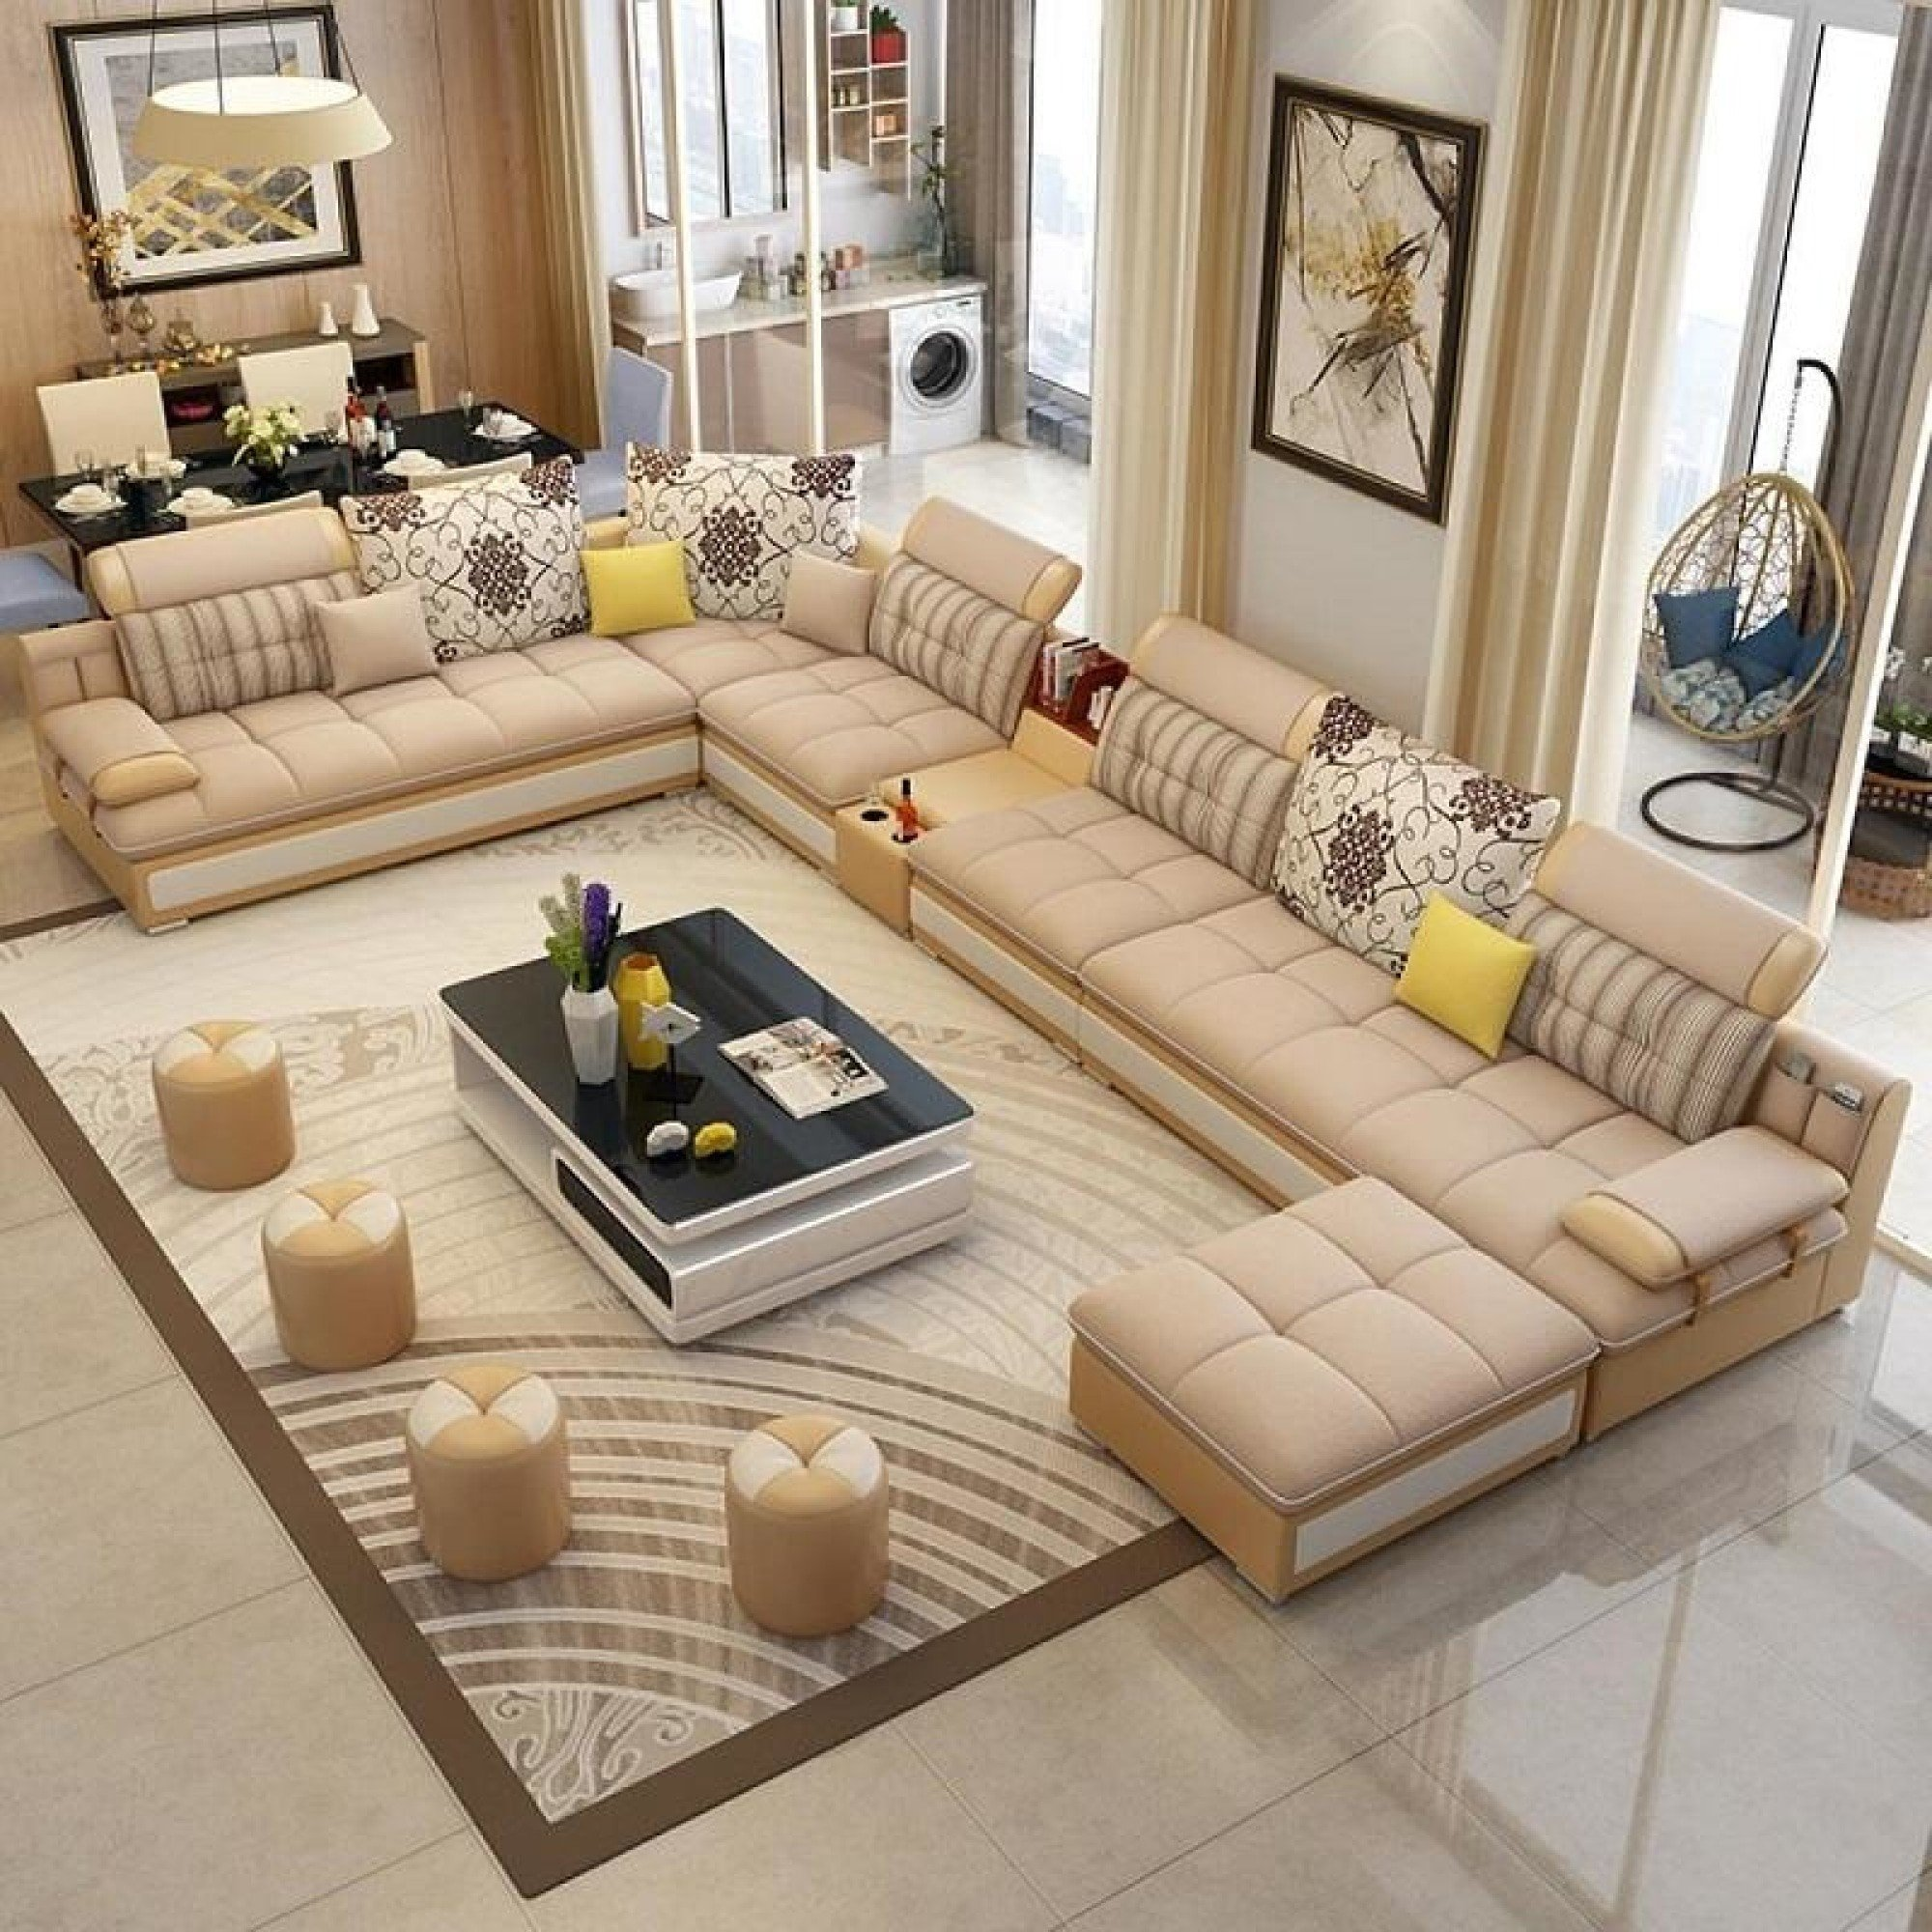 Luxury Modern U Shaped Leather Fabric Corner Sectional Sofa Set Design Couches For Living Room With Ottoman In 2020 Corner Sofa Design Corner Sectional Sofa Living Room Sofa Design